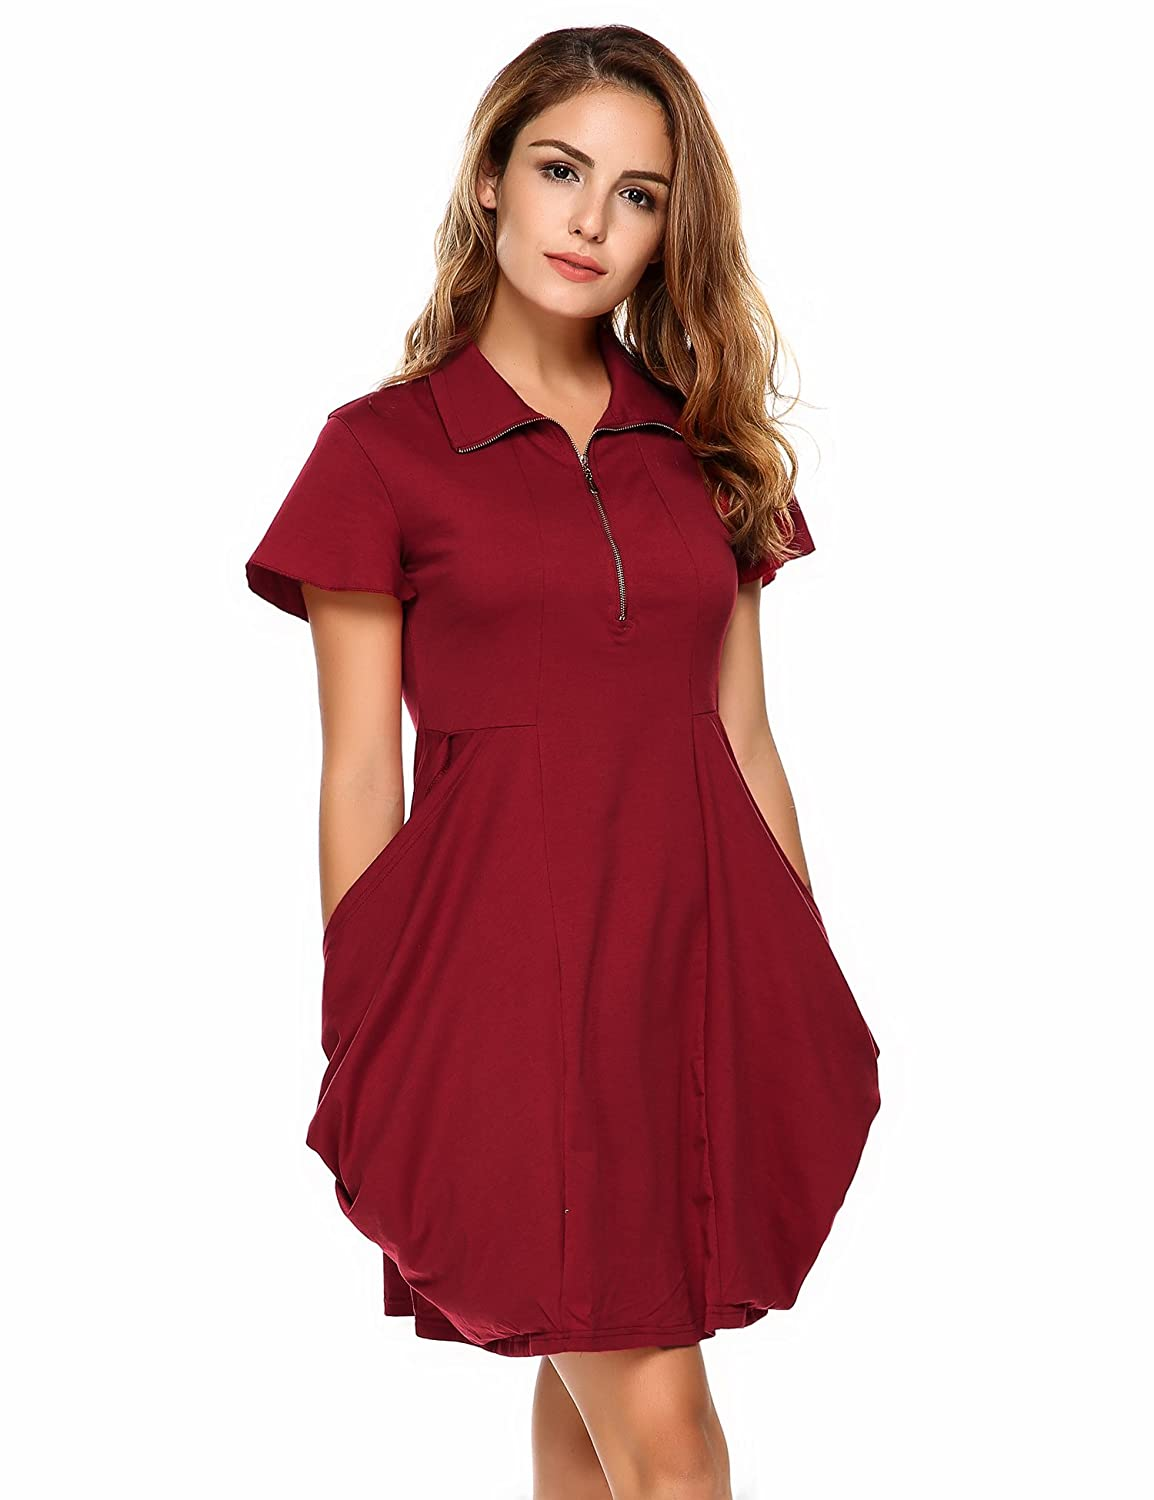 ccaefdfed257 Meaneor Womens Short Sleeve Casual Swing T Shirt Dress with Pockets 100%  Cotton at Amazon Women s Clothing store